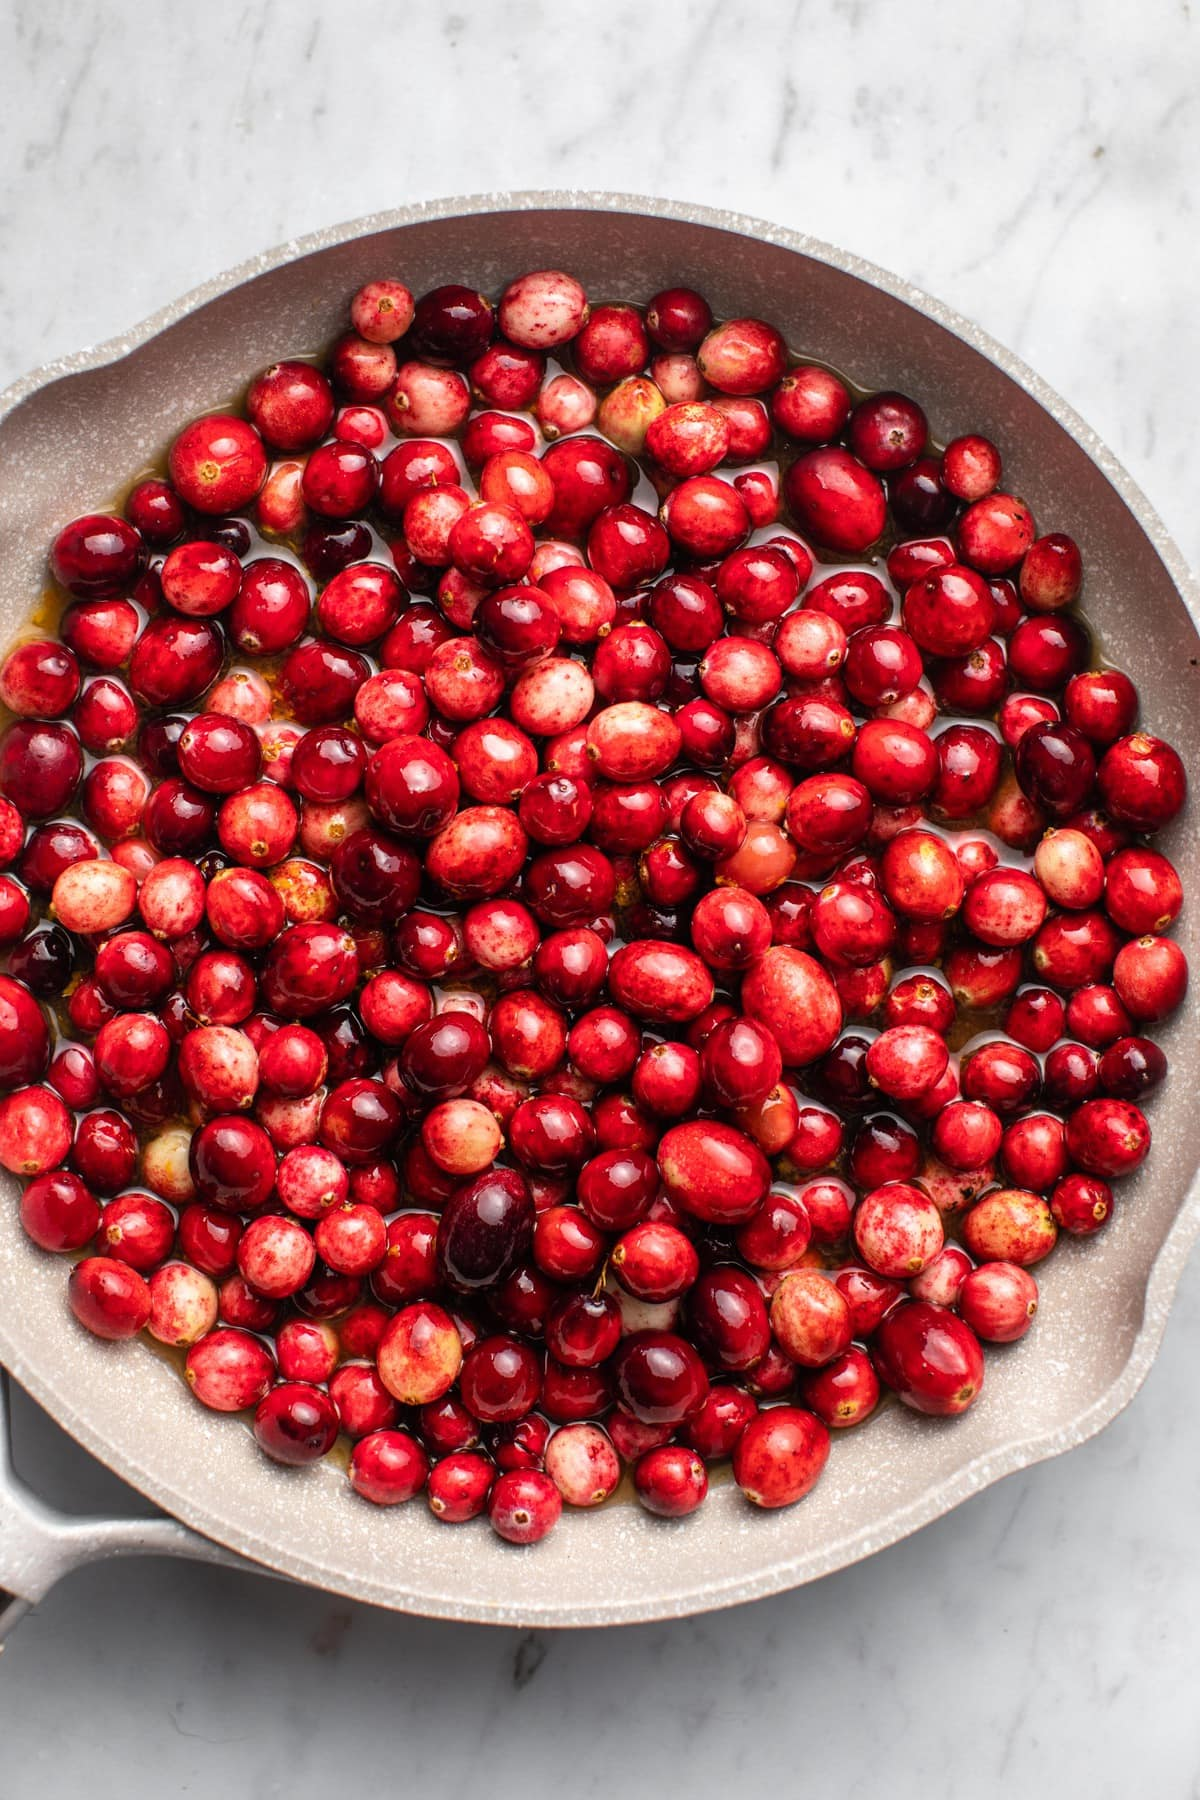 cranberry sauce ingredients mixed together in a grey saucepan before cooking